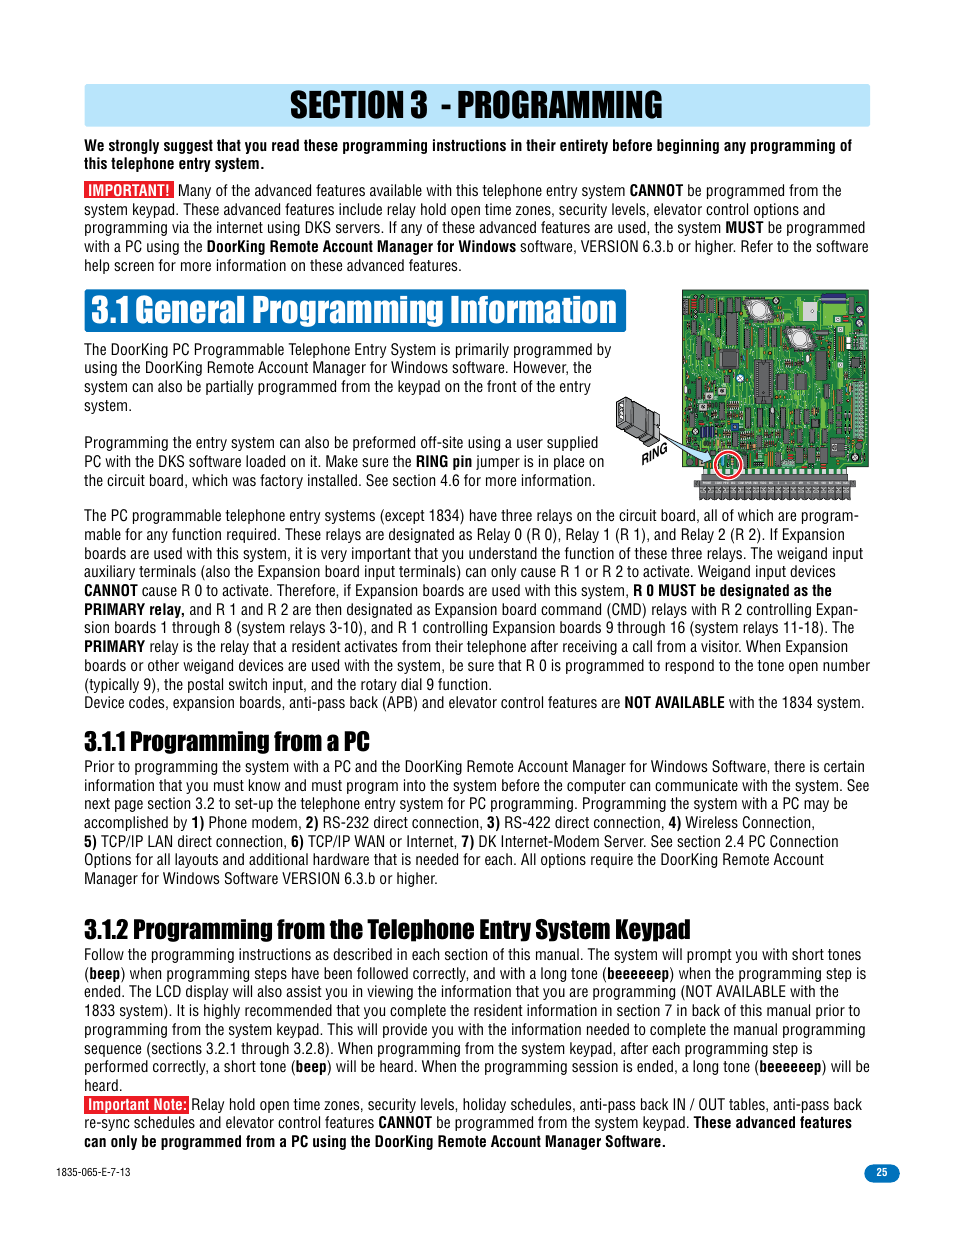 1 general programming information 1 programming from a pc Master code | DoorKing 1833 PC Programmable User Manual | Page 27 / 70  sc 1 st  manualsdir.com & 1 general programming information 1 programming from a pc Master ...